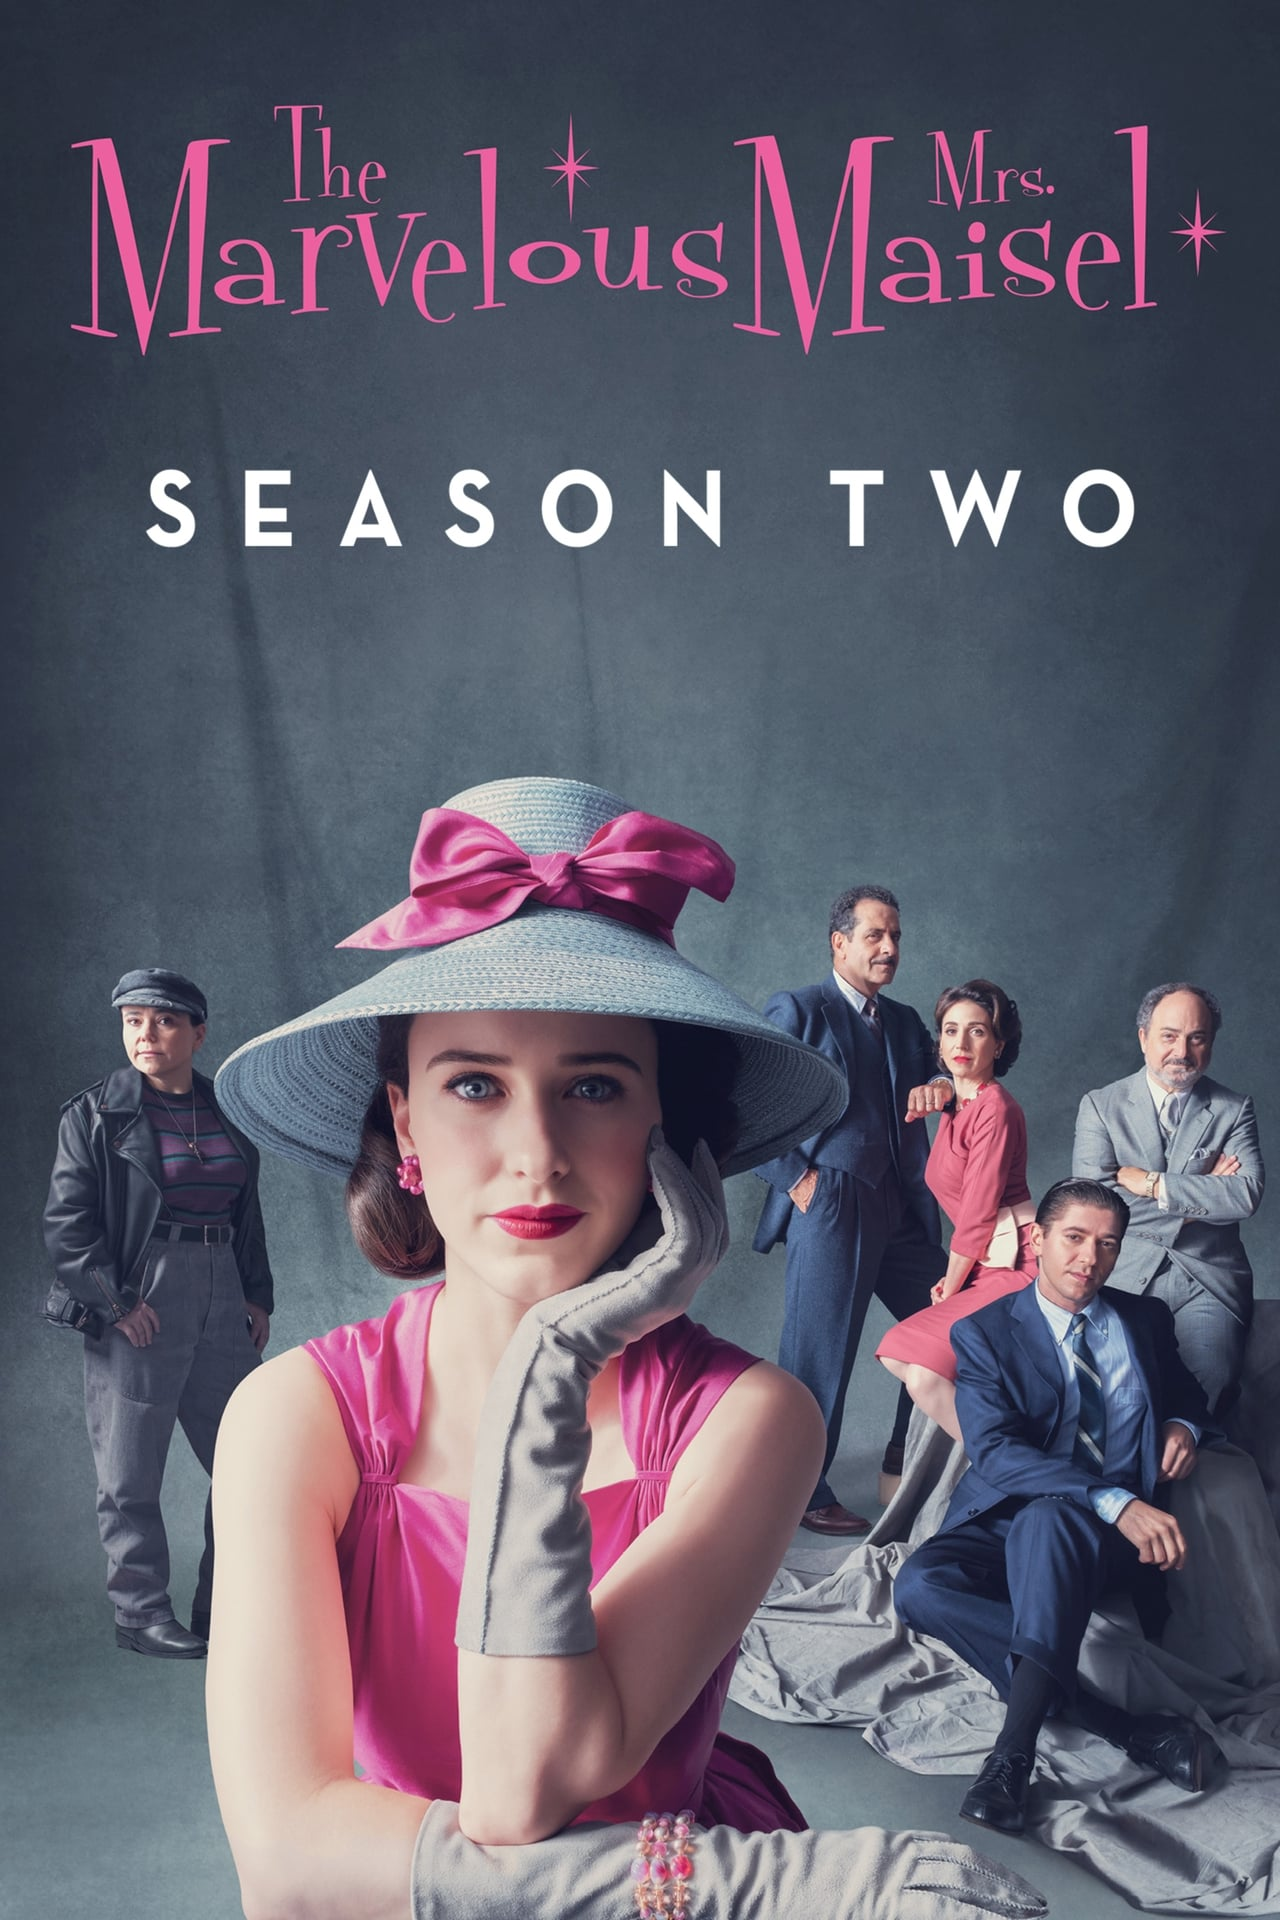 The Marvelous Mrs. Maisel Season 2 gomovies